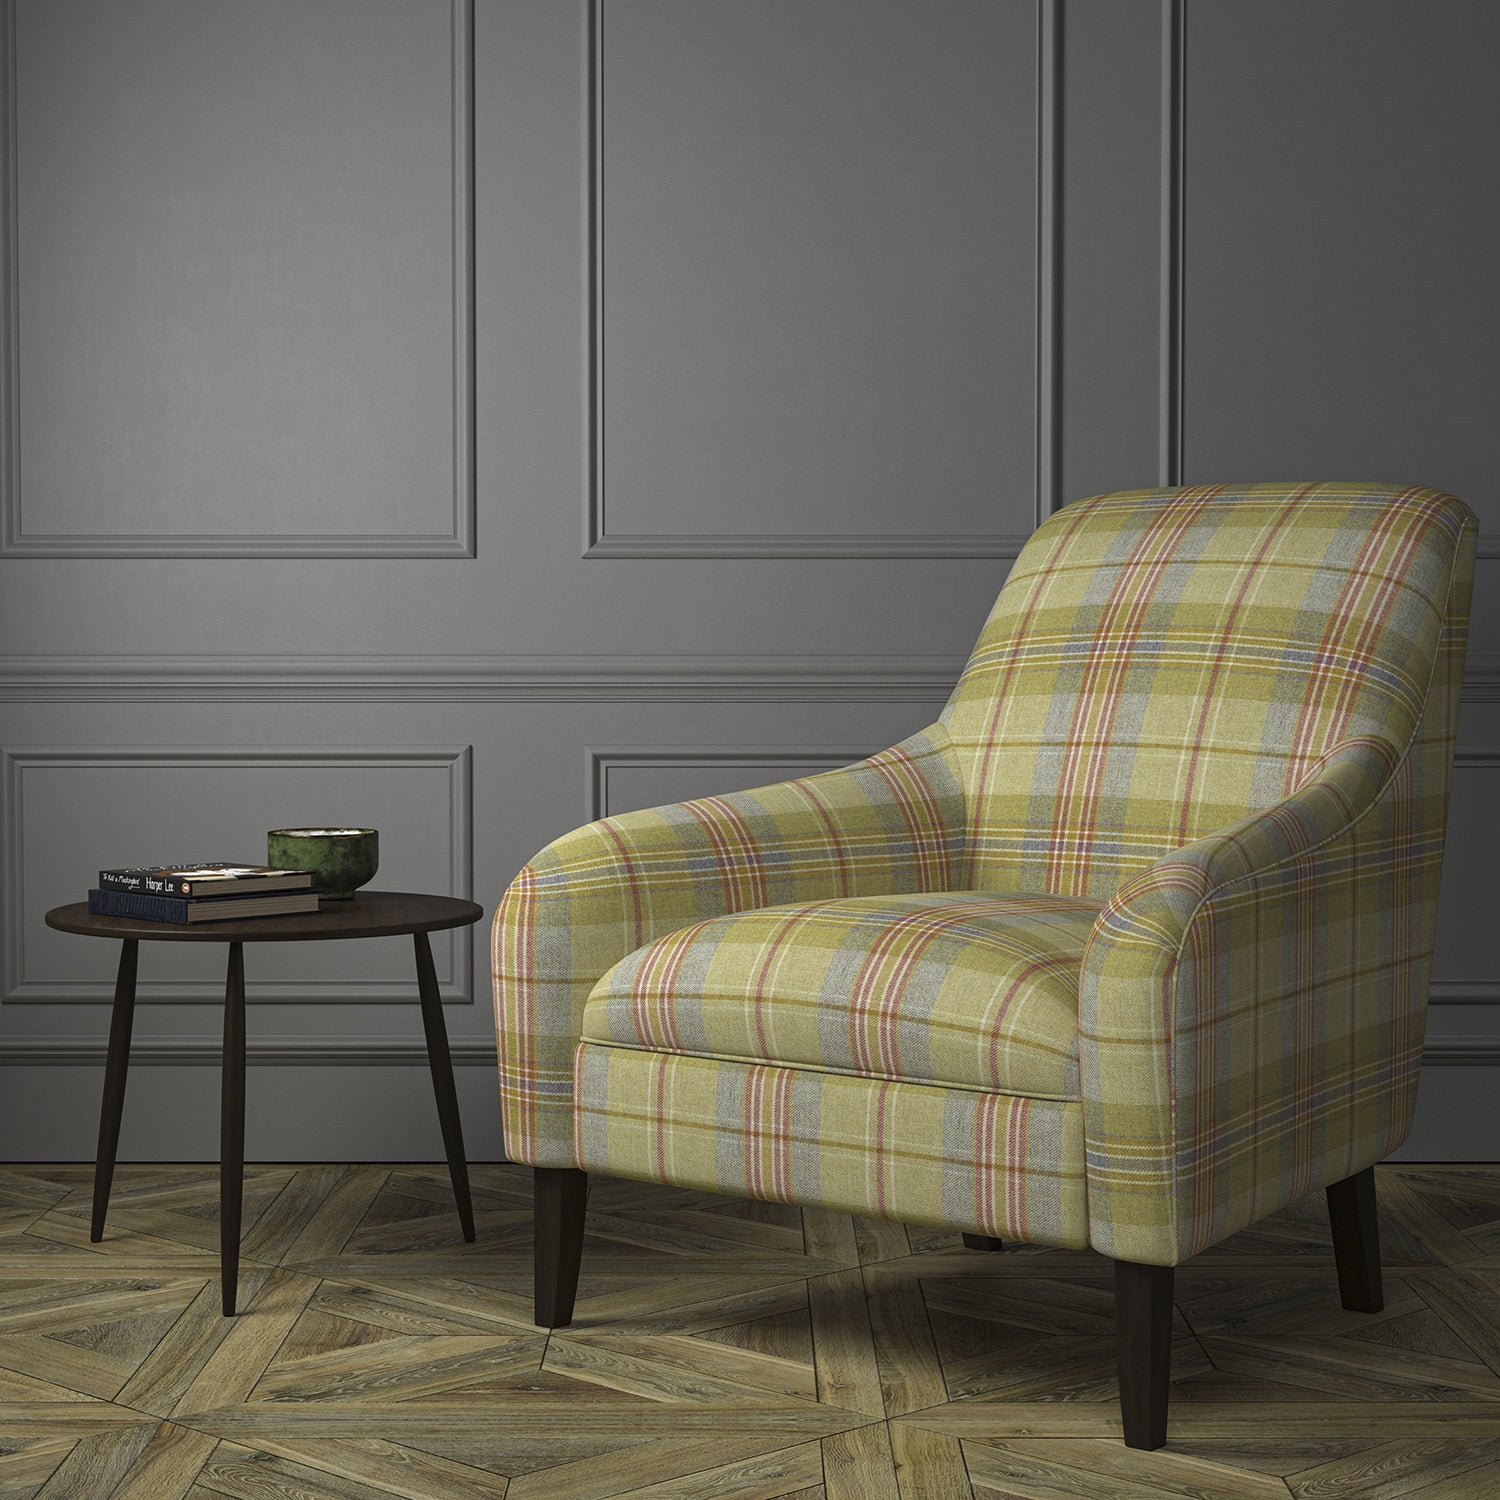 Chair upholstered in a green and red Scottish wool plaid check fabric